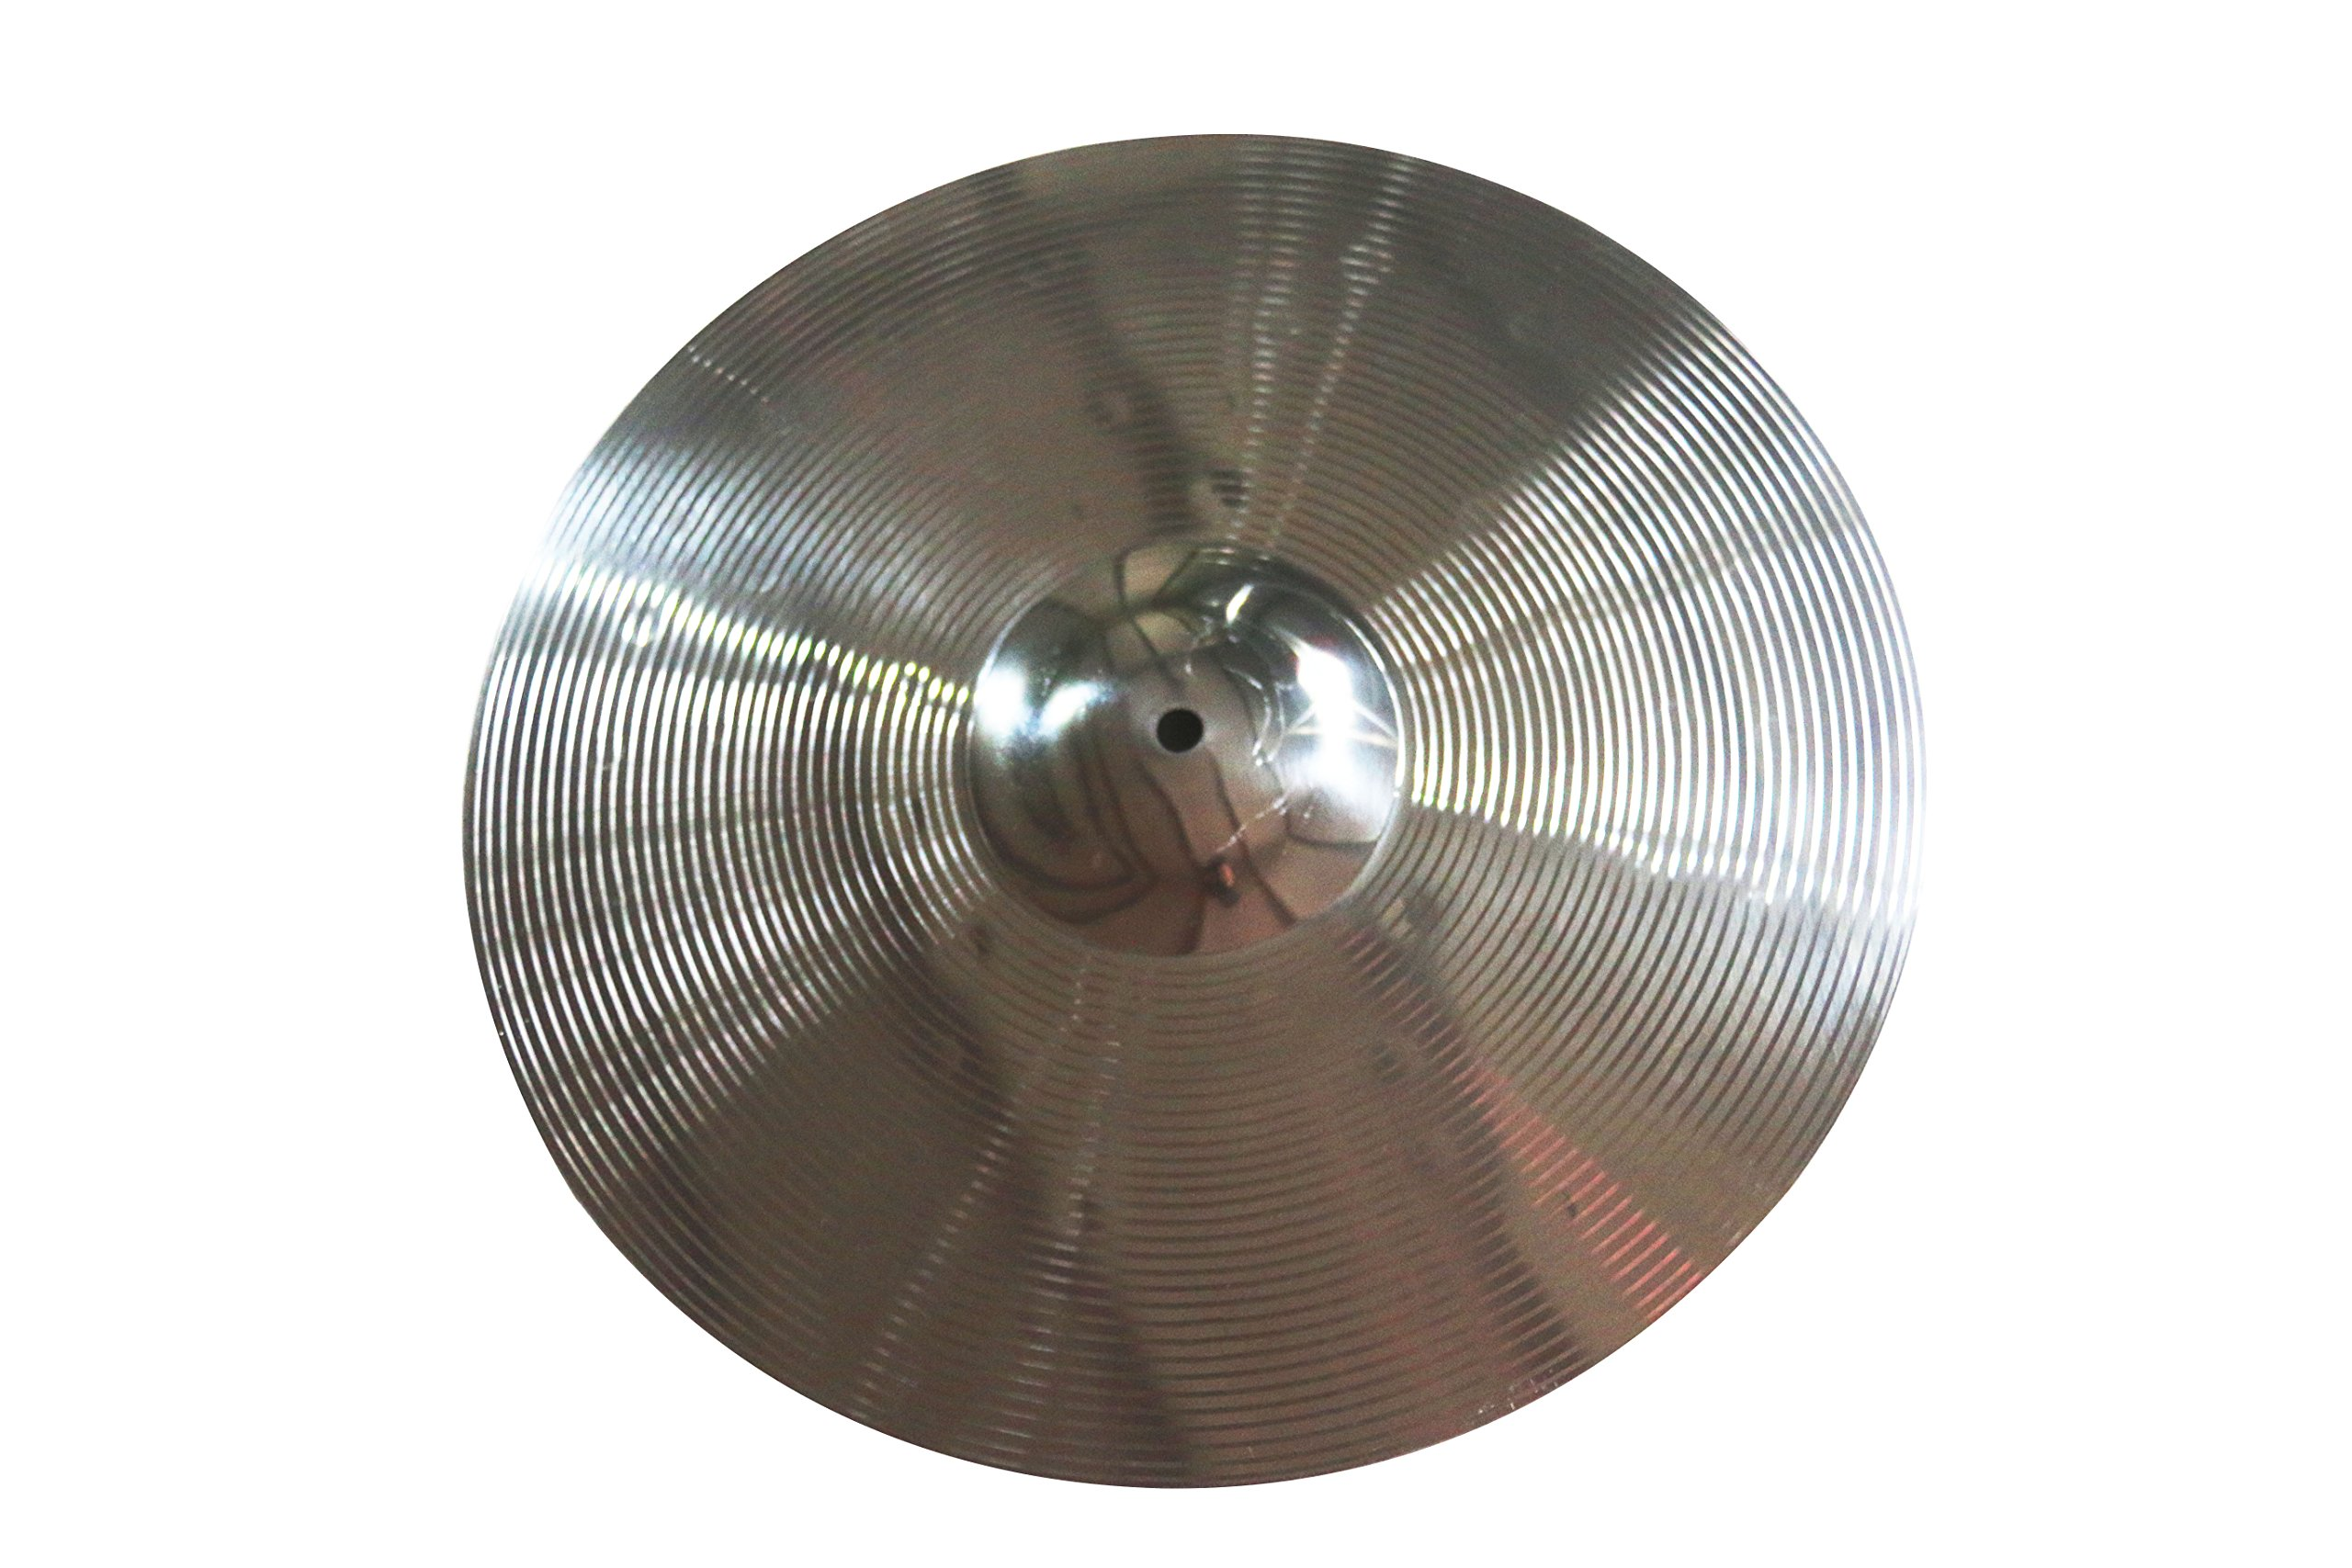 Aliyes Advance Alloy 20 inch ride Cymbals For Drumset(ALDD20) by Aliyes